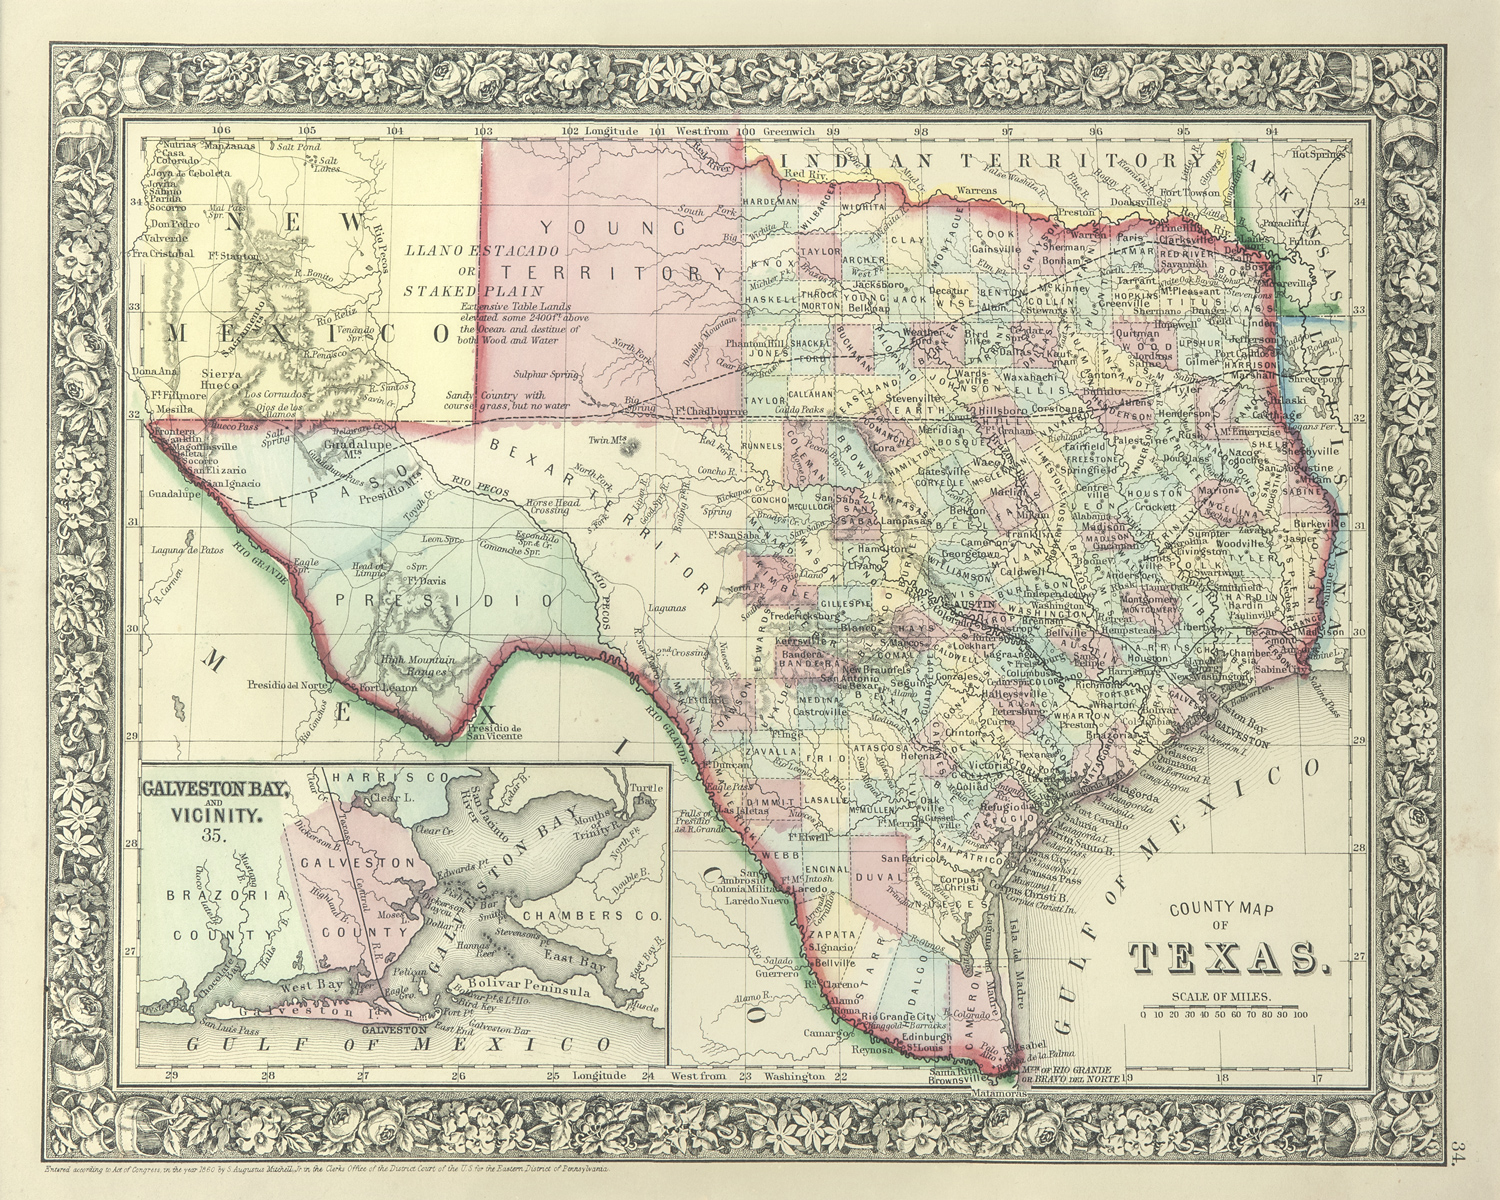 The Antiquarium - Antique Print & Map Gallery - Texas Maps - Texas Historical Maps For Sale